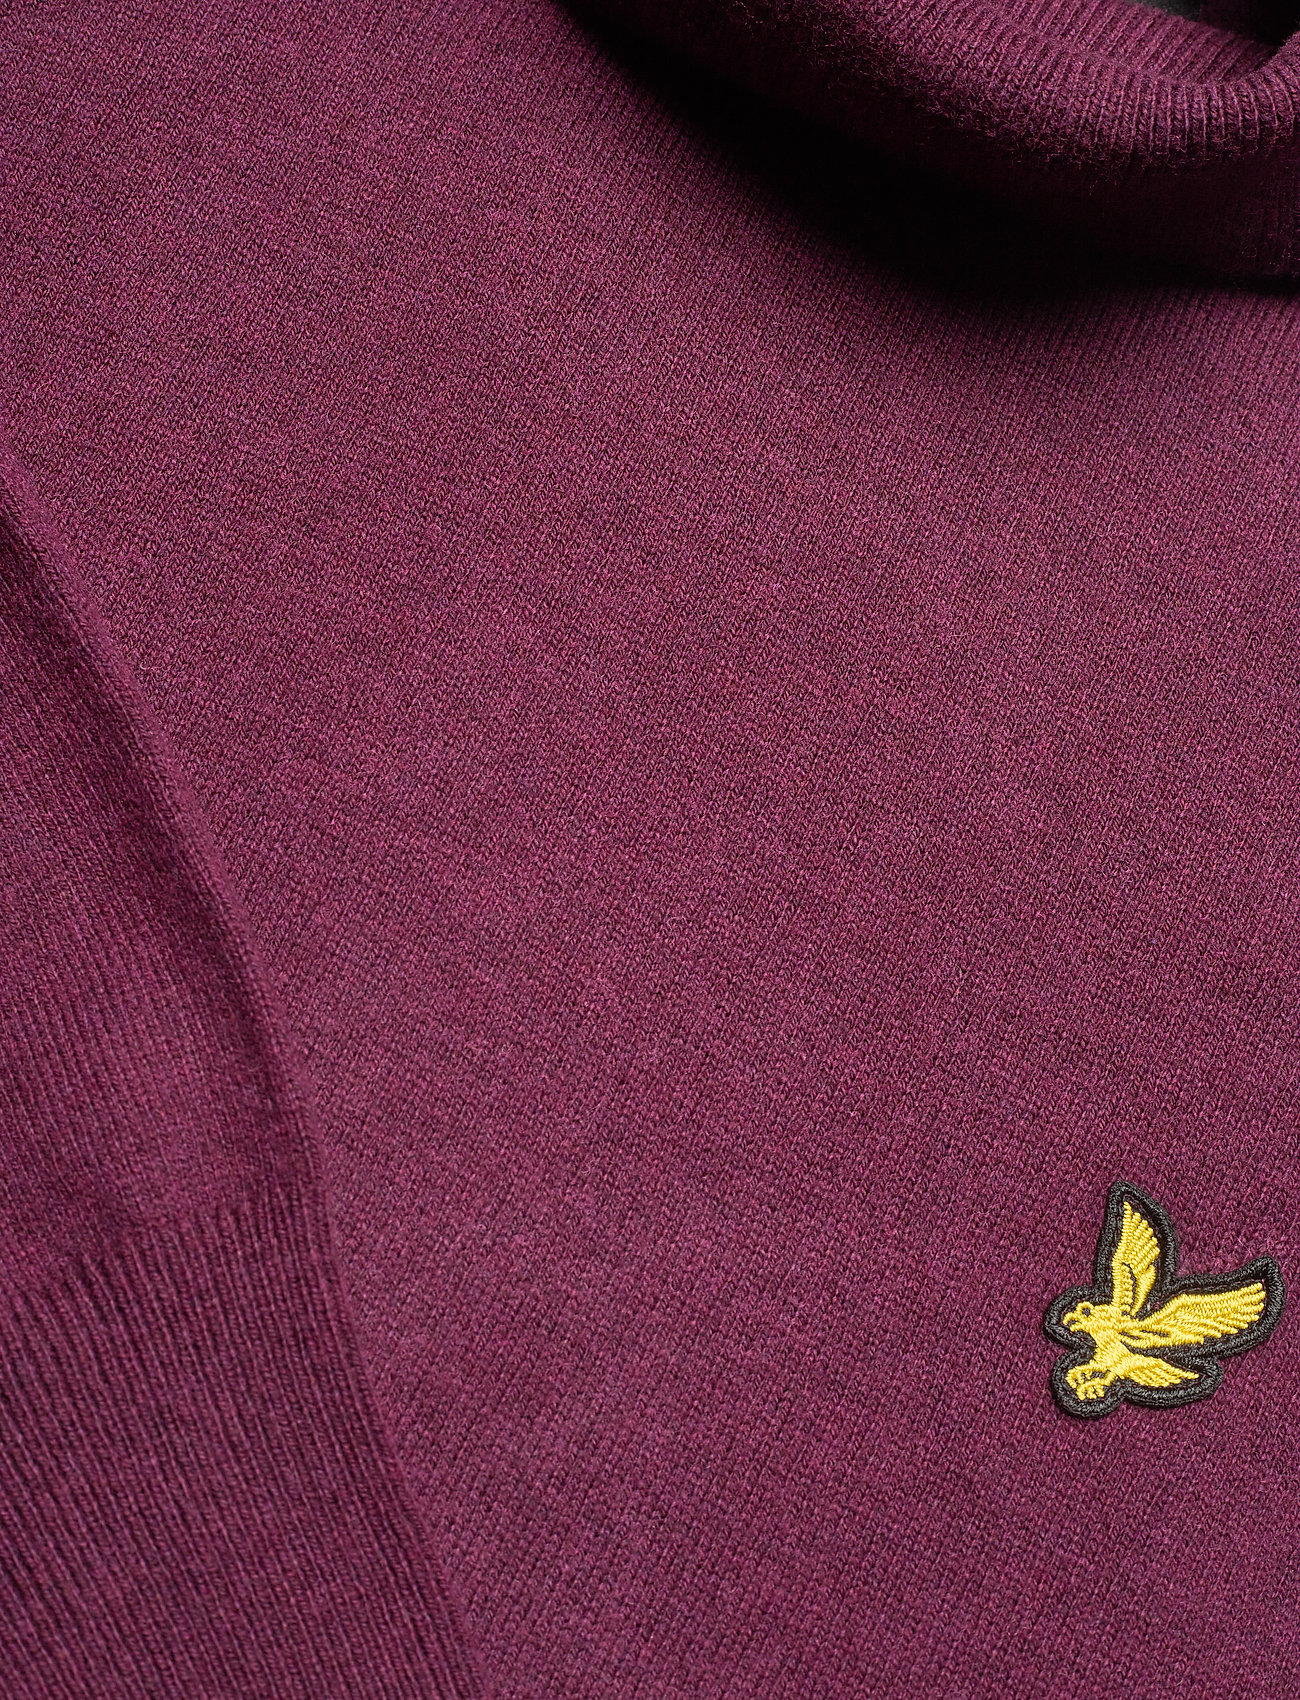 Lyle & Scott Roll Neck Jumper - Strikkevarer BURGUNDY - Menn Klær